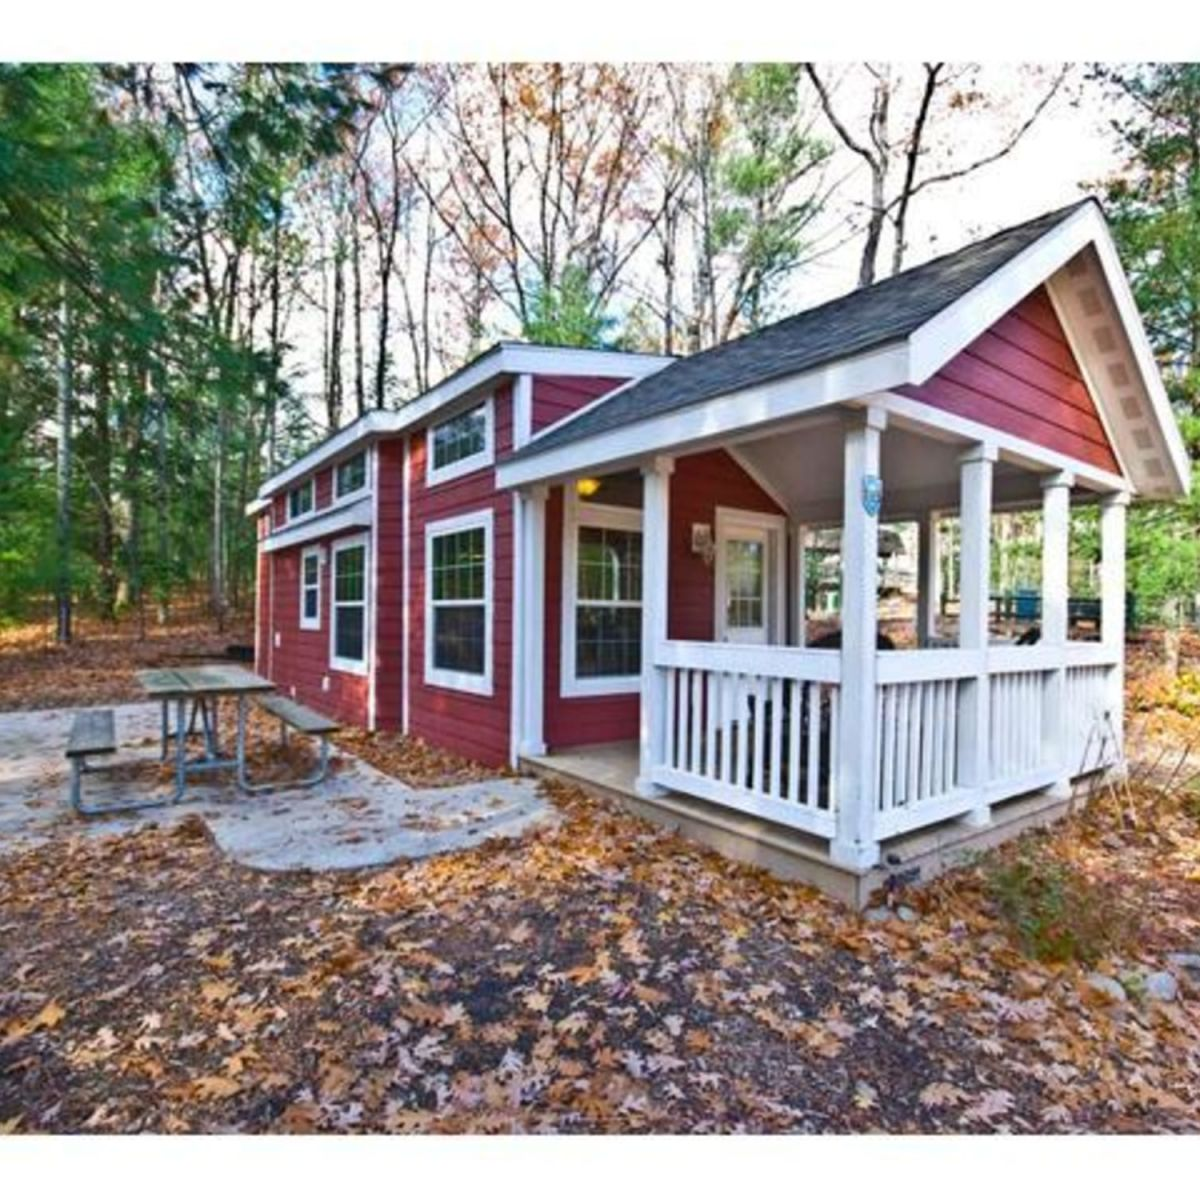 Tiny Home Designs: Tiny House For Sale In Traverse City